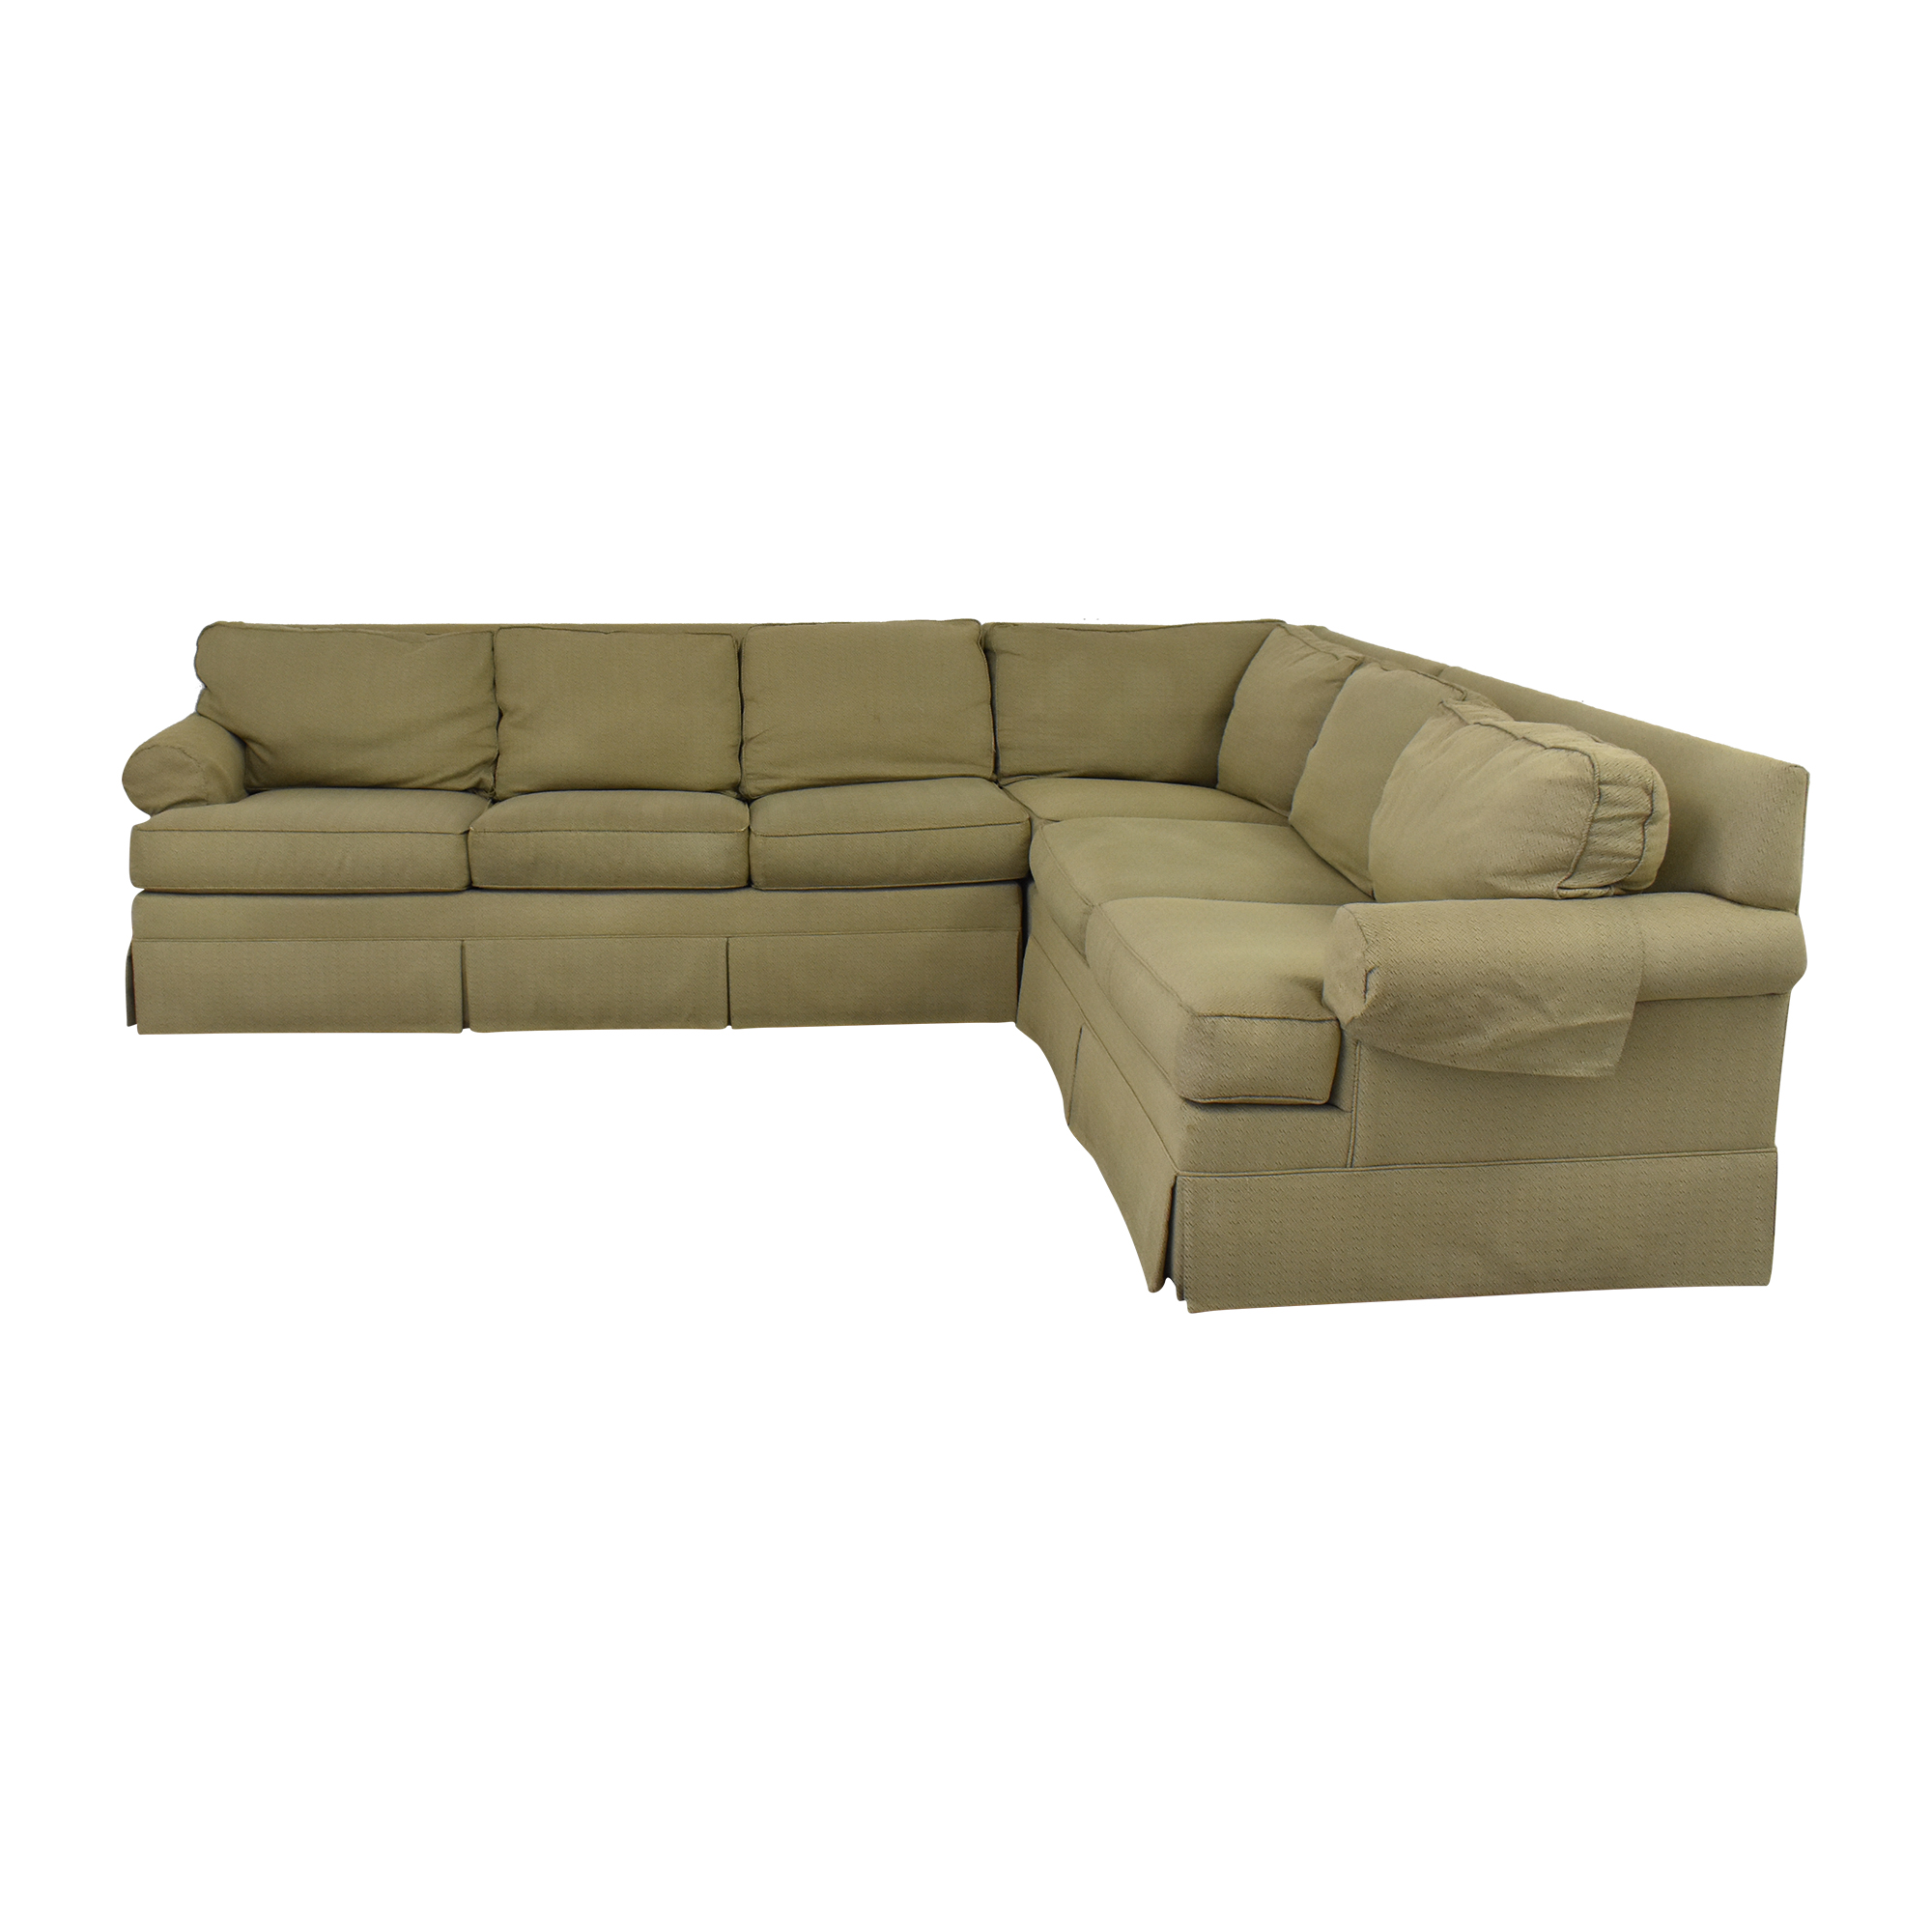 buy Ethan Allan Skirted Sectional Sofa Ethan Allen Sectionals